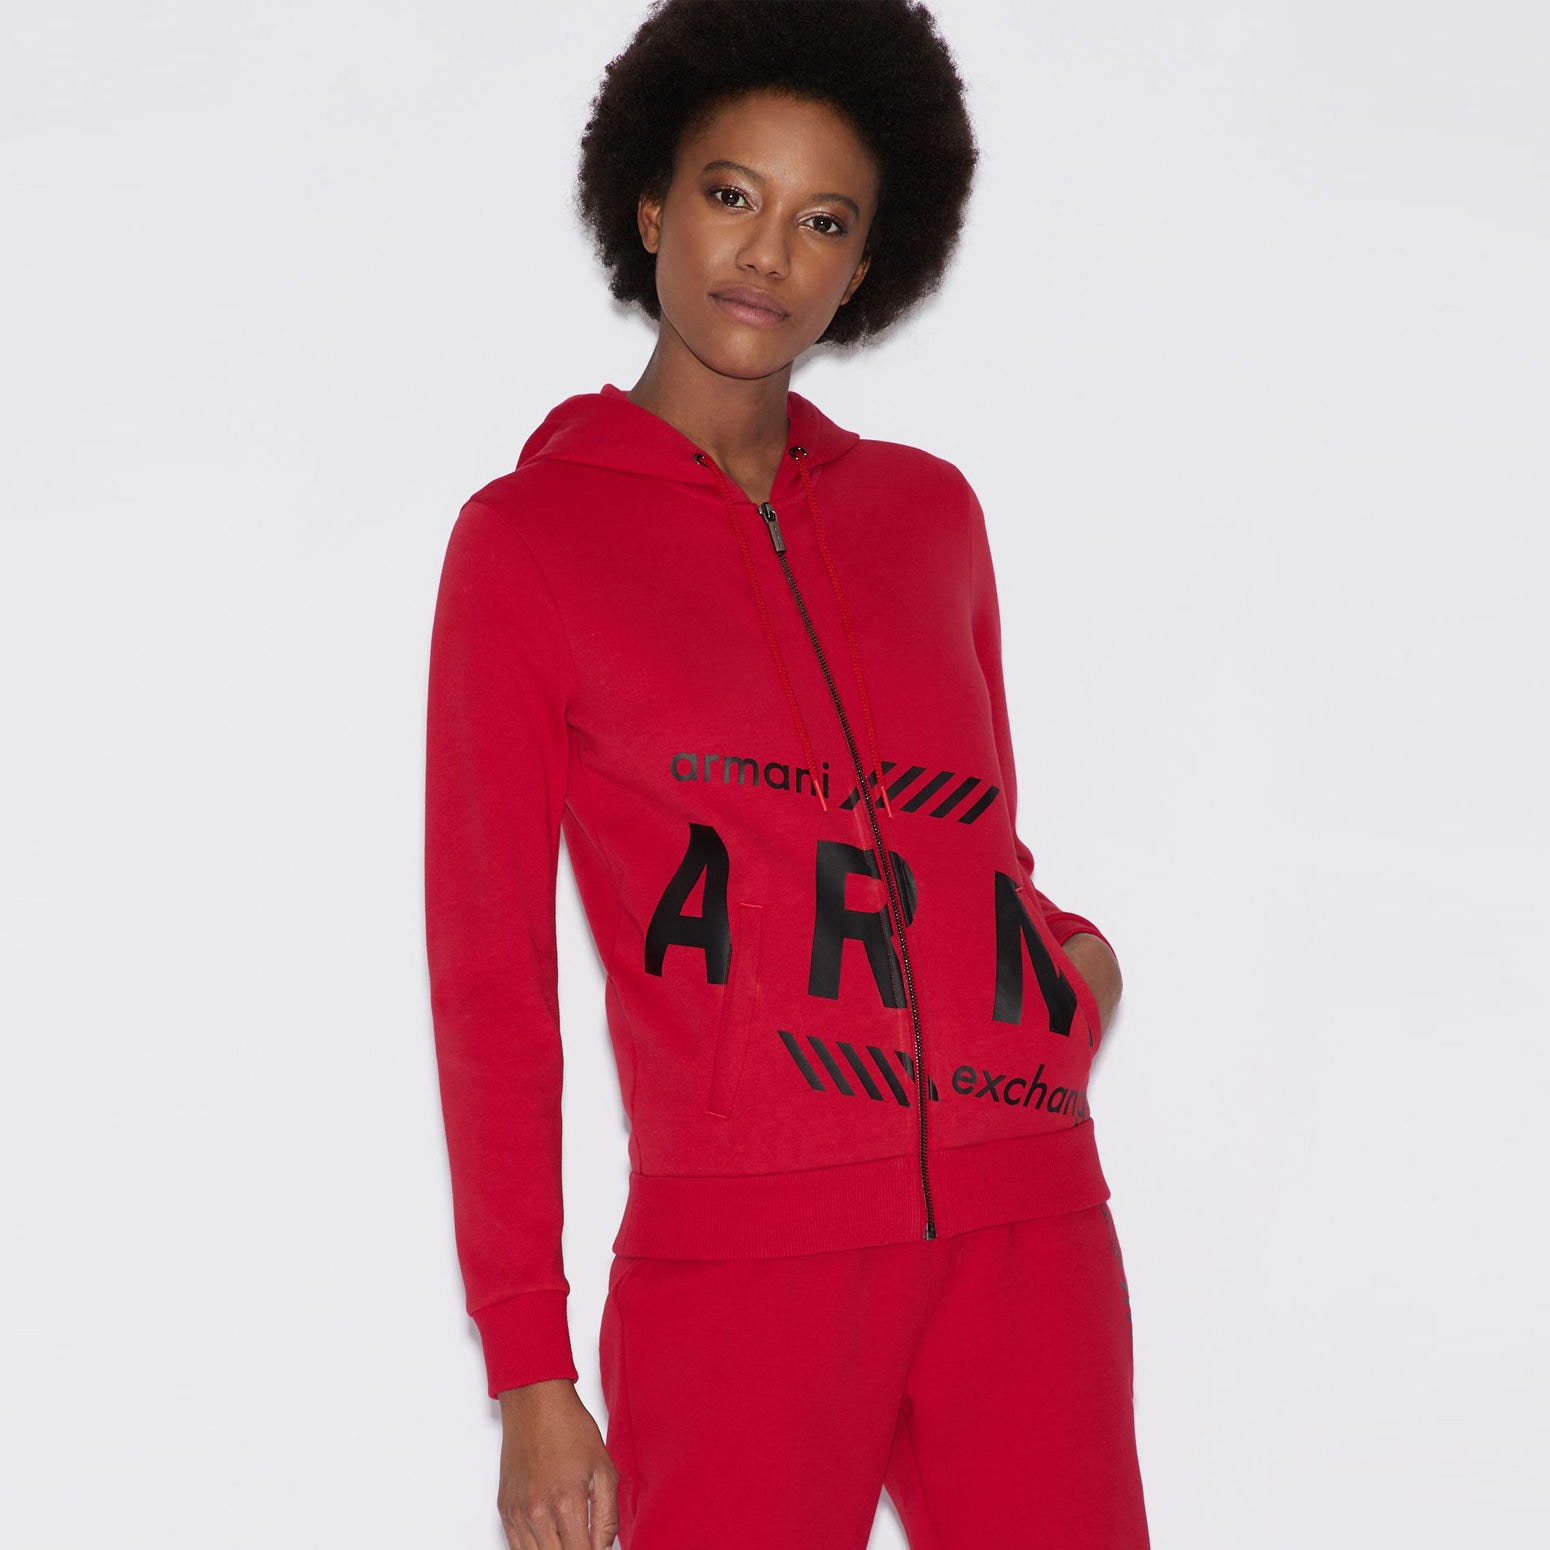 Armani Exchange Women S Clothing Accessories A X Store